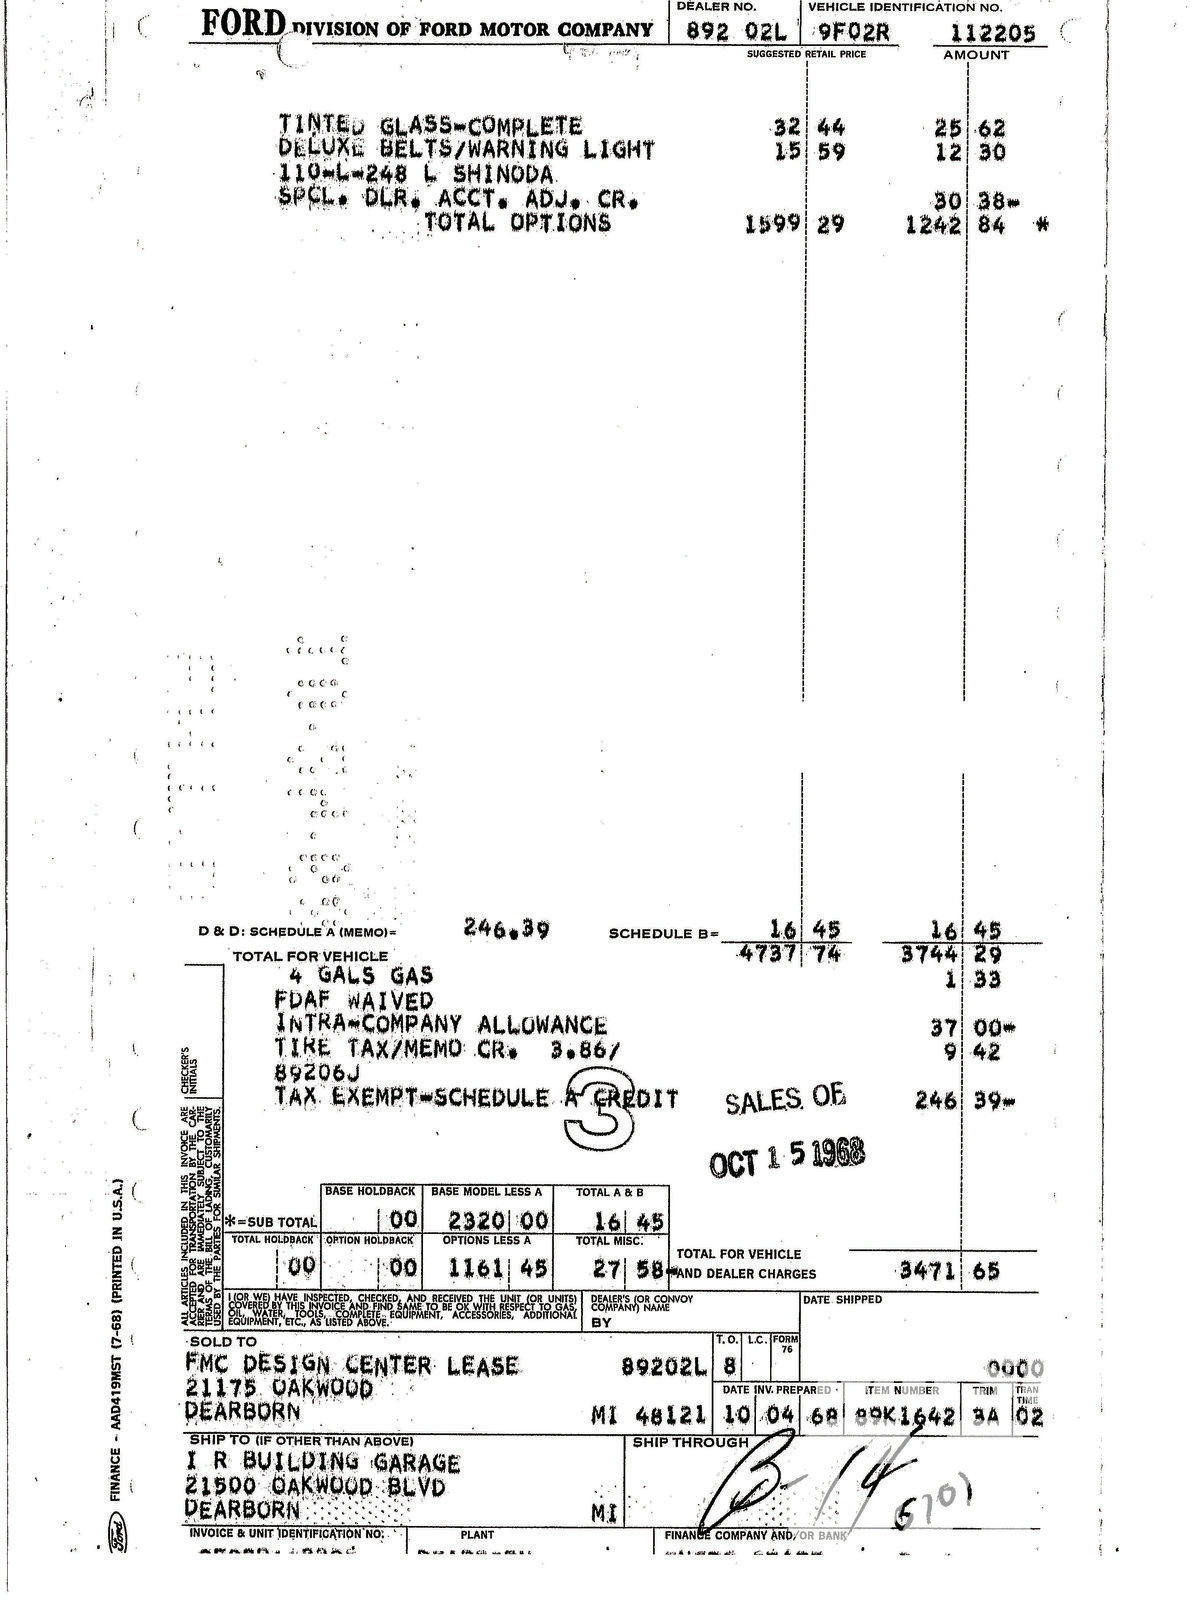 "John researched this invoice to his Mustang, which matched his car's VIN and had ""L Shinoda"" in the third line from the top. The Ship To address at the bottom is for the I R Garage, which is right across the street from the Ford Design Center. This document proves the link to both Larry Shinoda and the Ford Design Center. The team used the Pastel Gray fastback as a palette to apply Shinoda's now famous Boss 302 graphics."